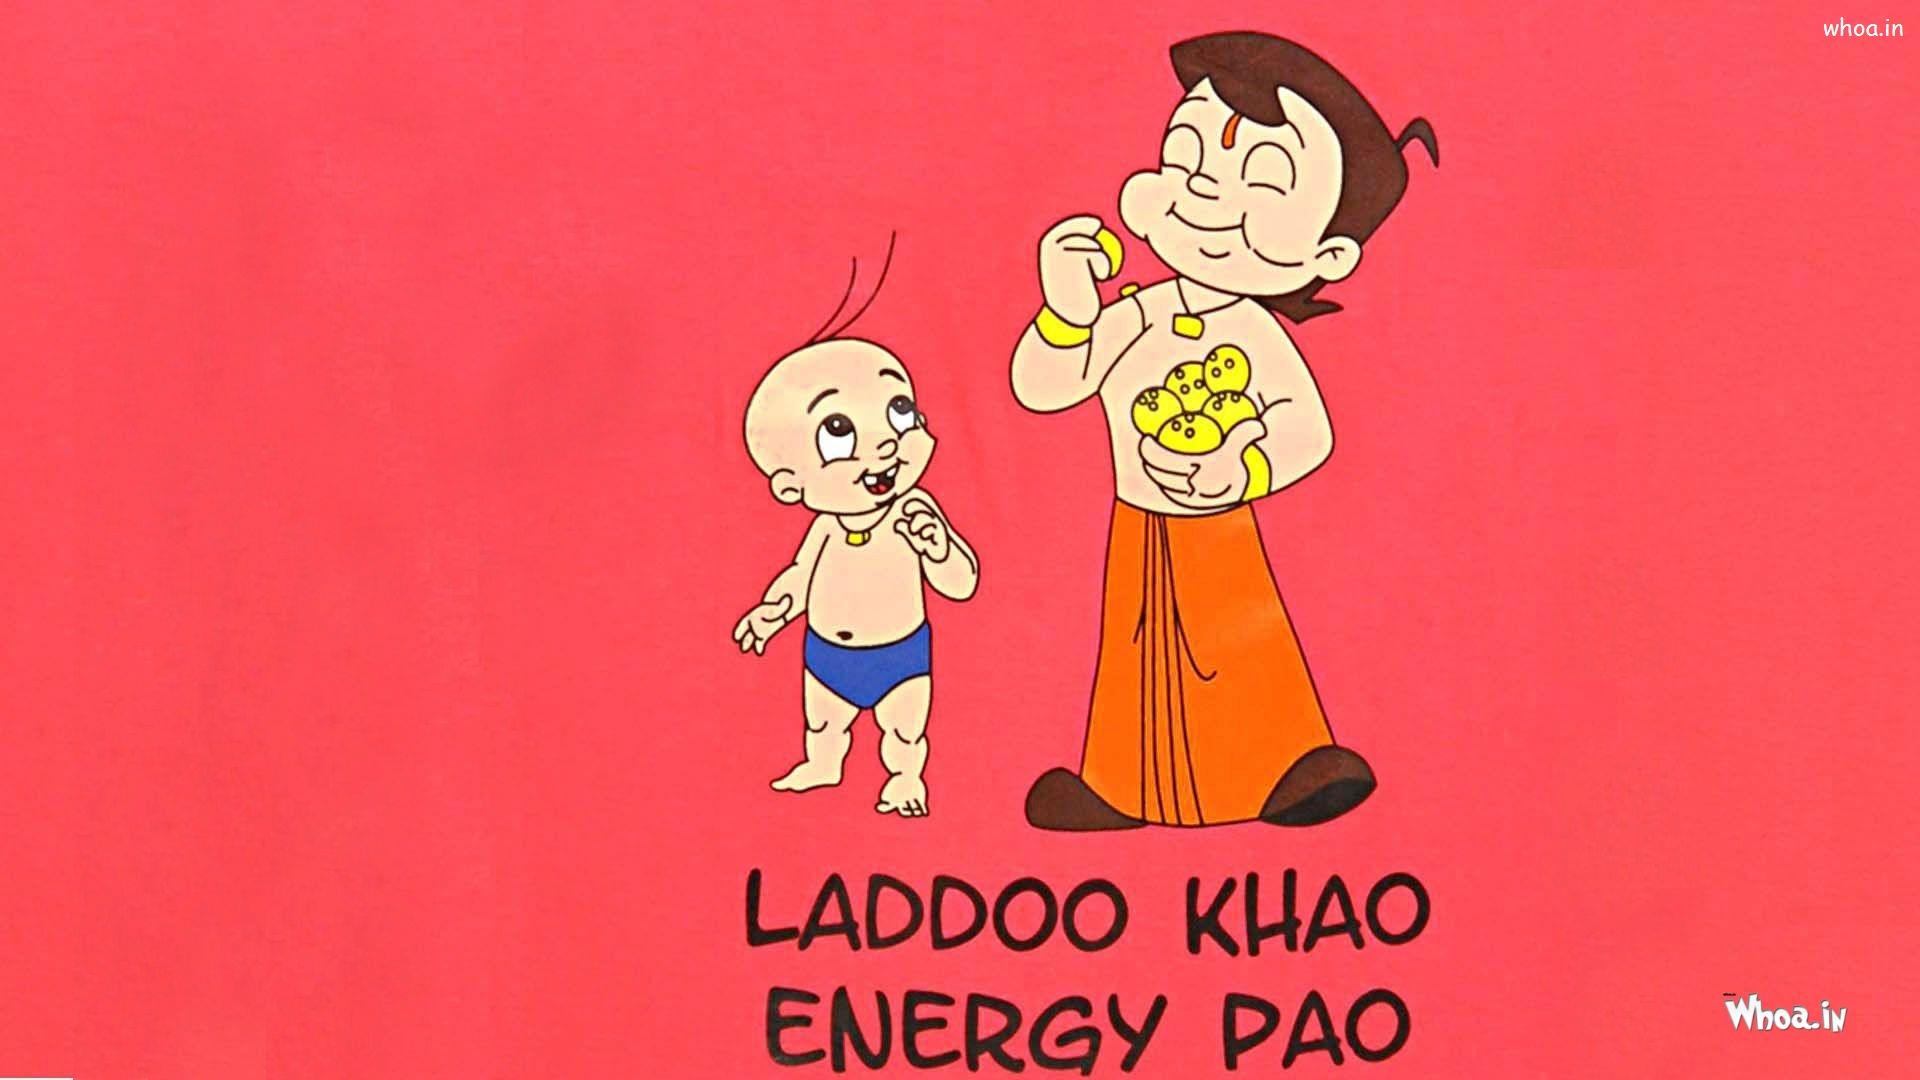 Good Wallpaper Logo Raju - chhota-bheem-and-raju-laddoo-khao-energy-pao-hd-cartoon-wallpaper  Gallery_515443.in/download/chhota-bheem-and-raju-laddoo-khao-energy-pao-hd-cartoon-wallpaper